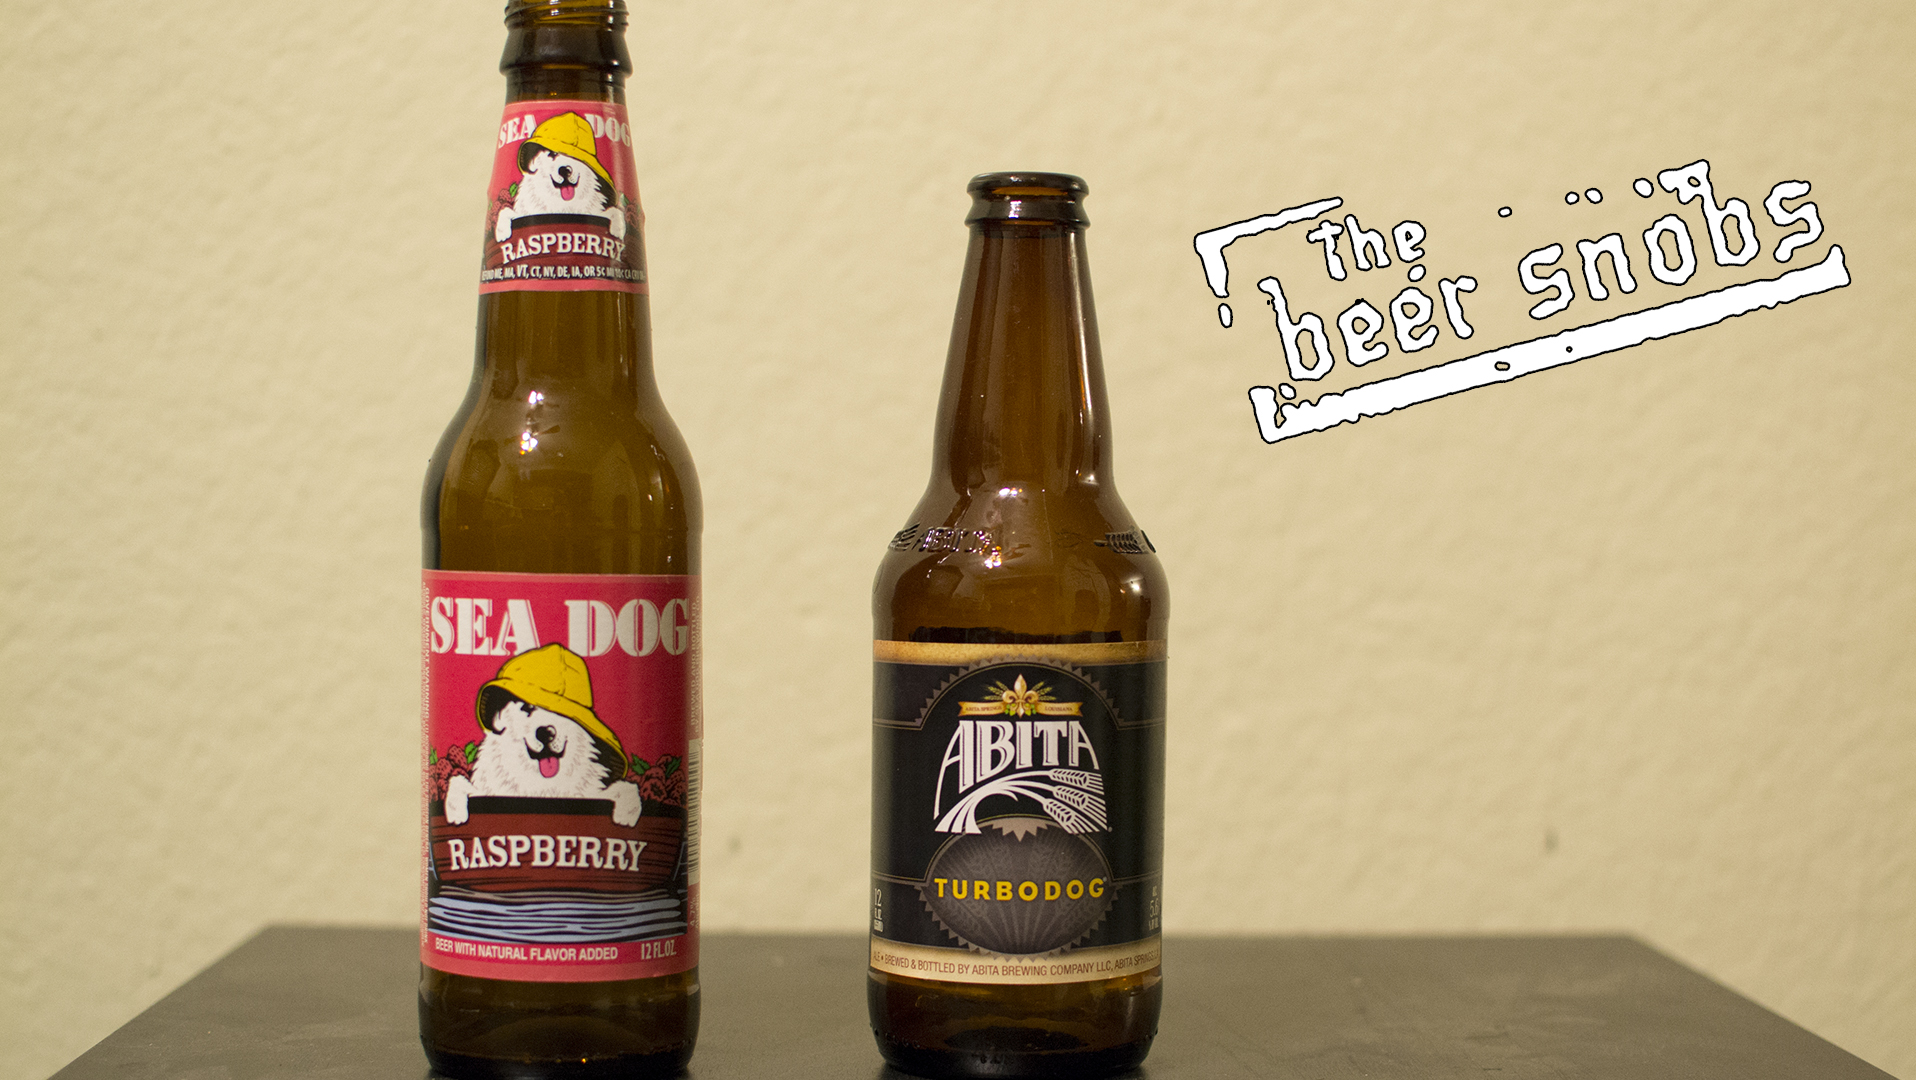 Sea Dog Raspberry and Albita Brewing Company Turbodog